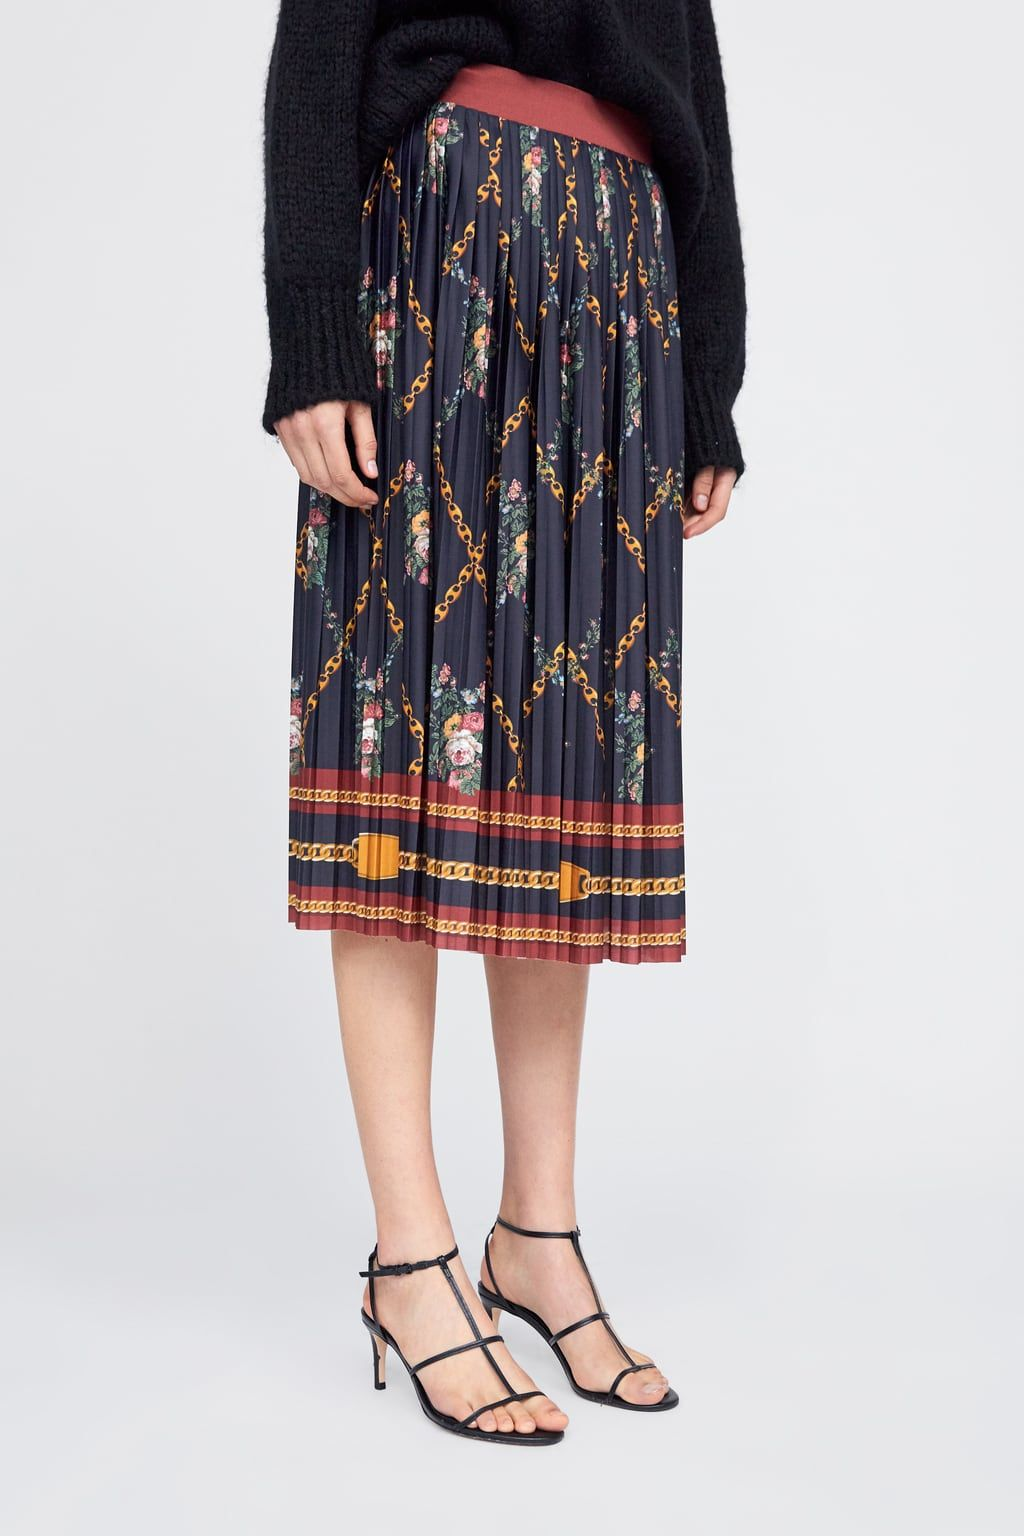 bfc3d92a80 Image 2 of CHAIN PRINT PLEATED SKIRT from Zara | Zara in 2019 ...